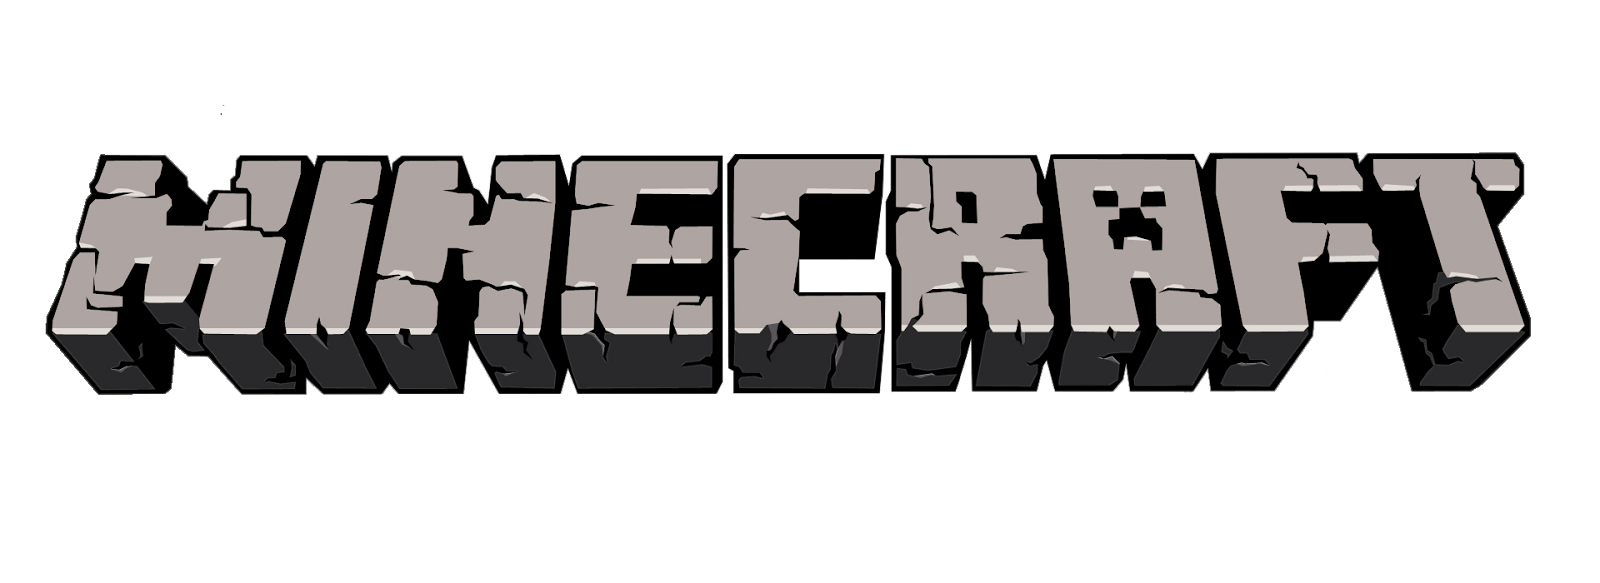 Free Minecraft Cliparts, Download Free Clip Art, Free Clip.